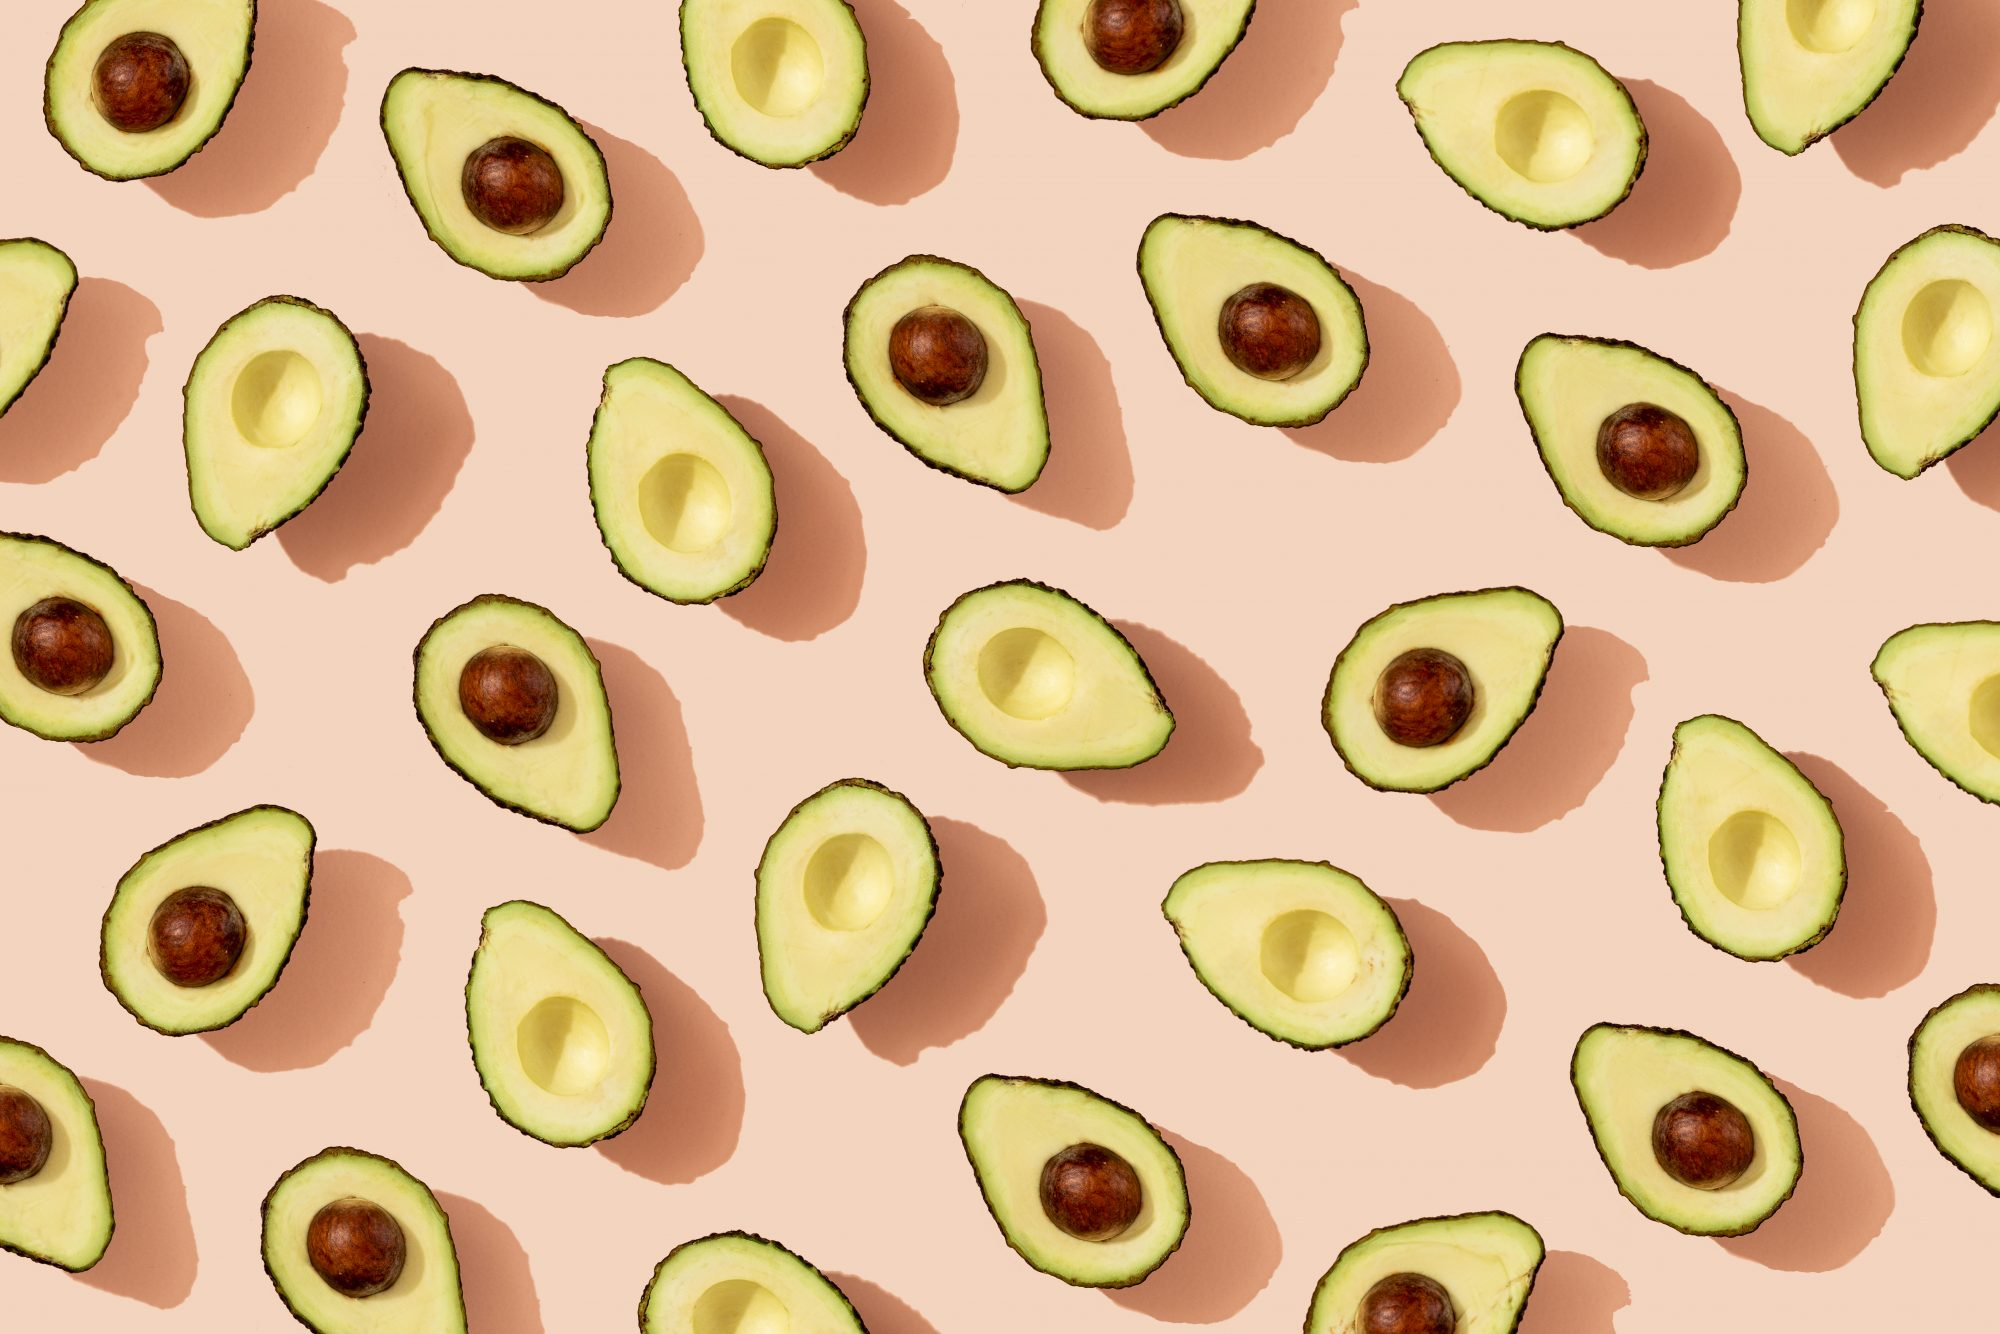 Easy avocado recipes - avocado collage